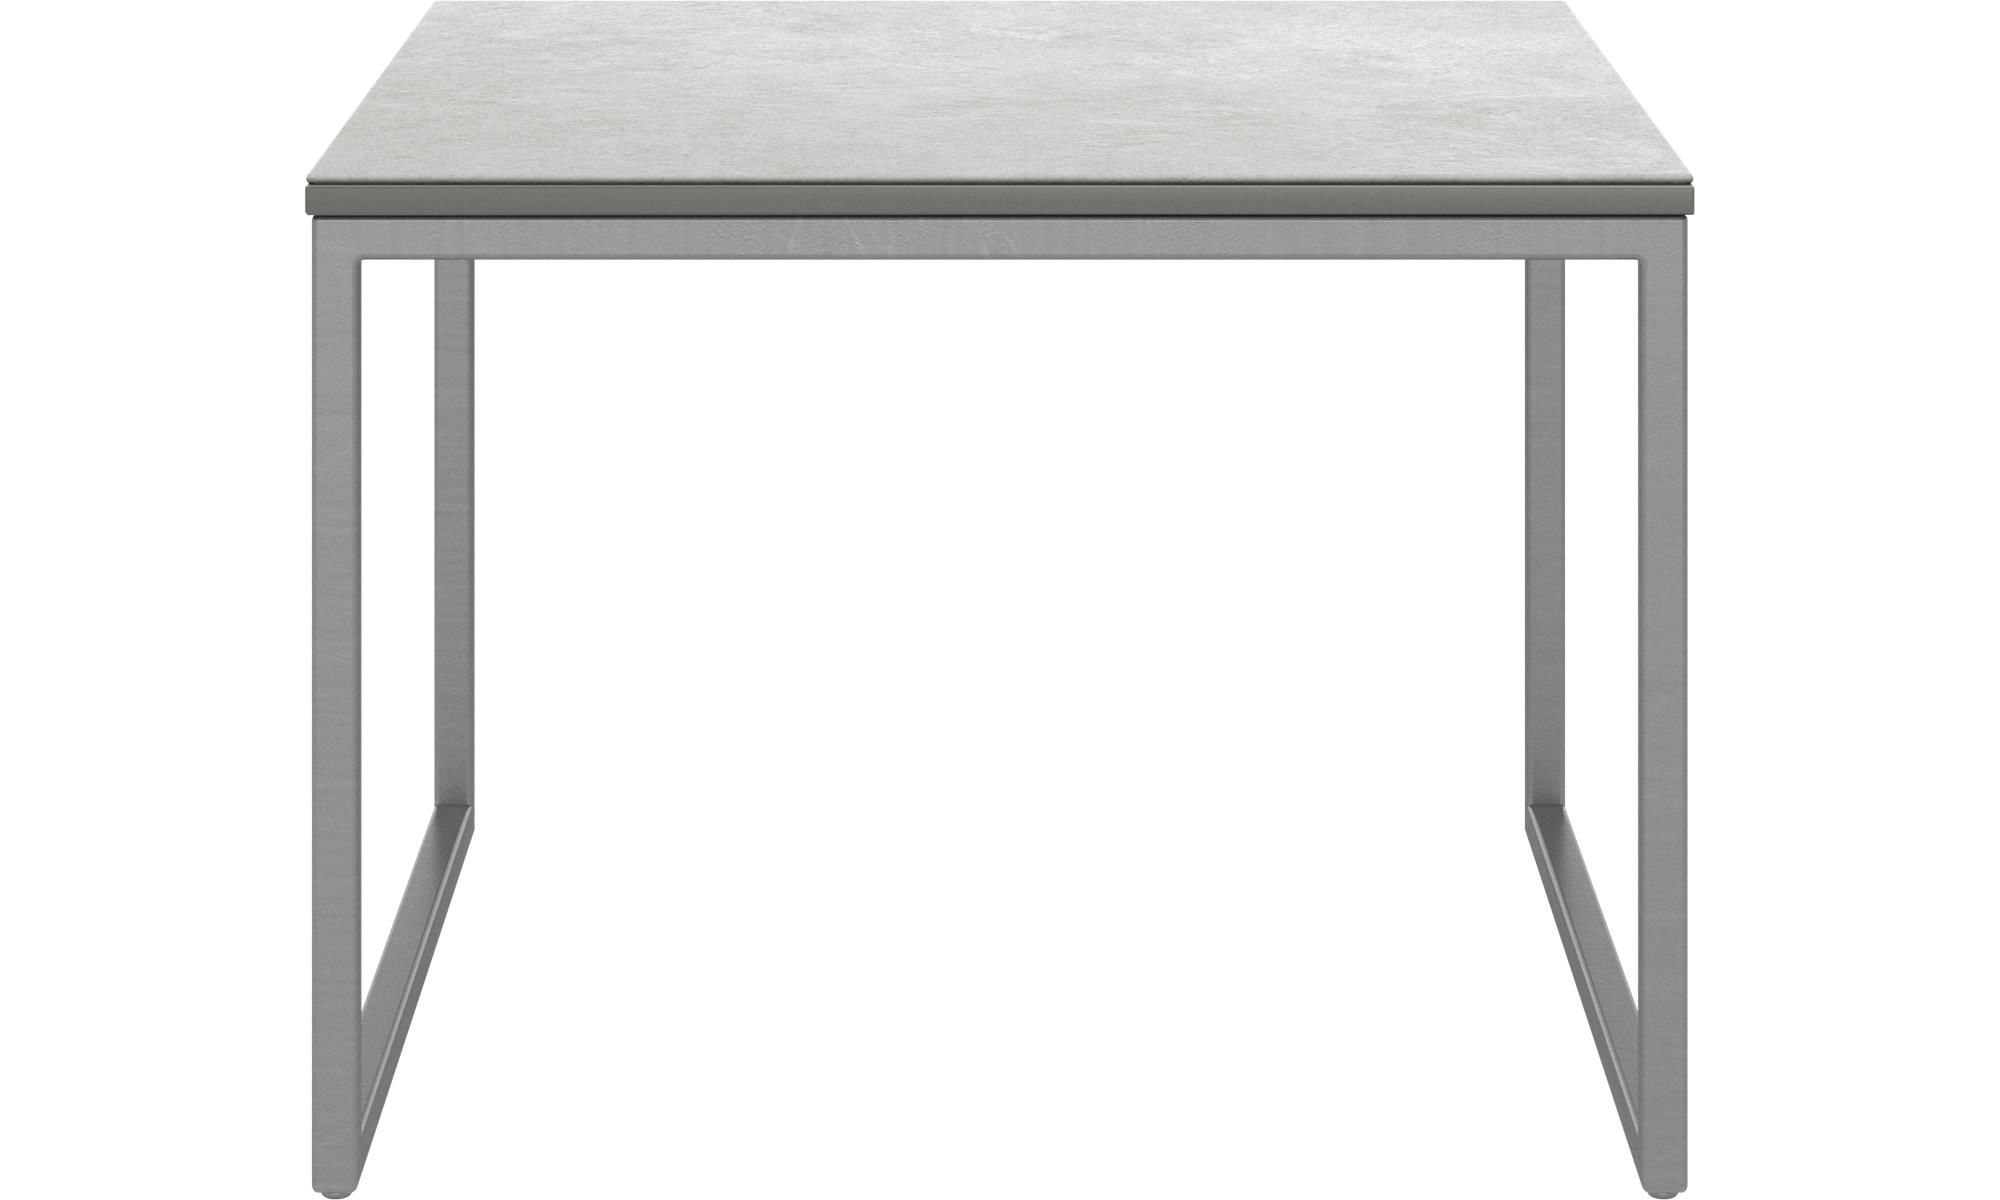 Lugo ceramic low side table